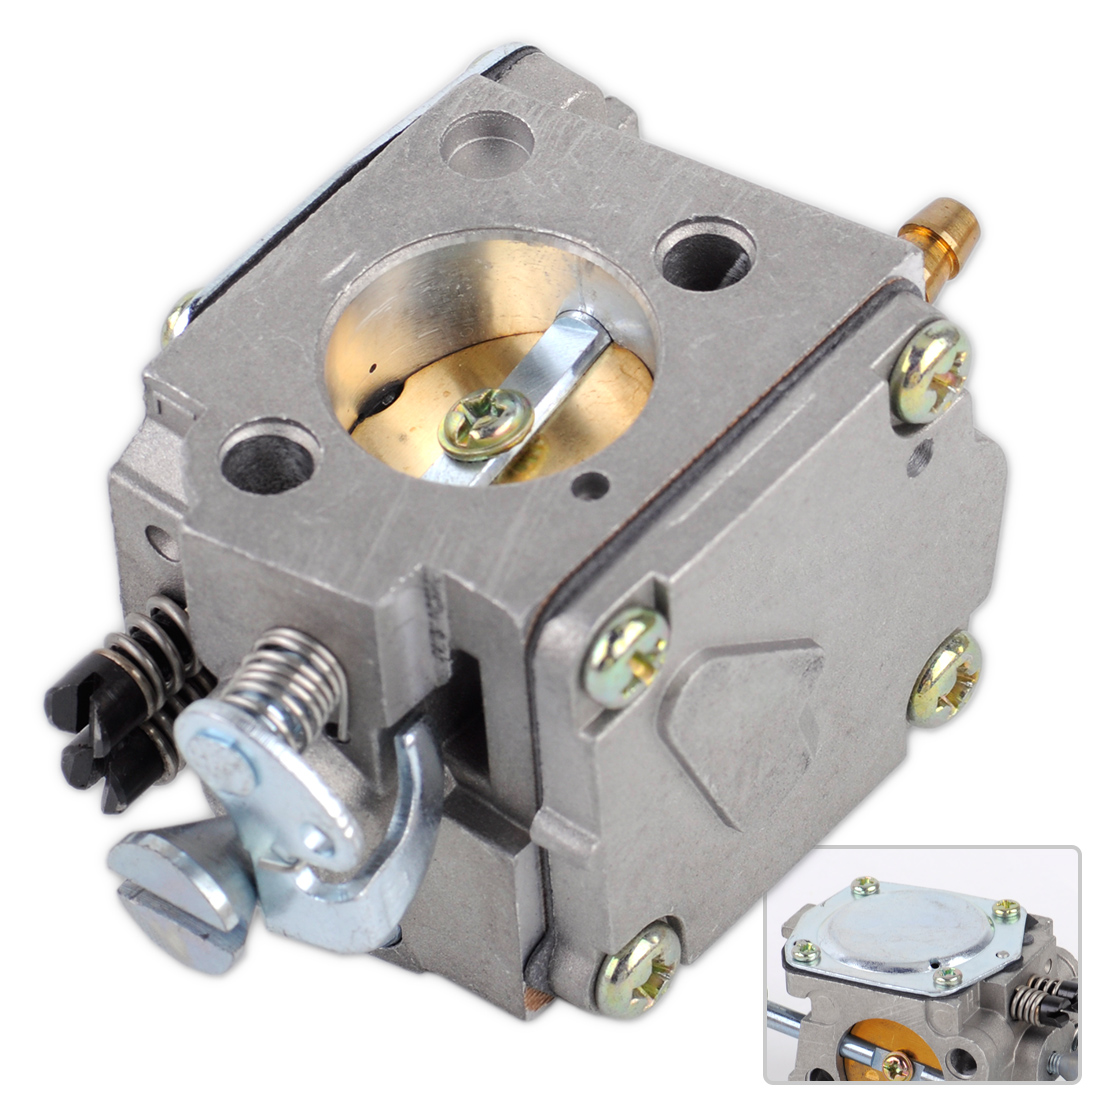 Carb Carby Carburetor To Fit HUSQVARNA 61 268 266 272 XP Chainsaw Motor Part